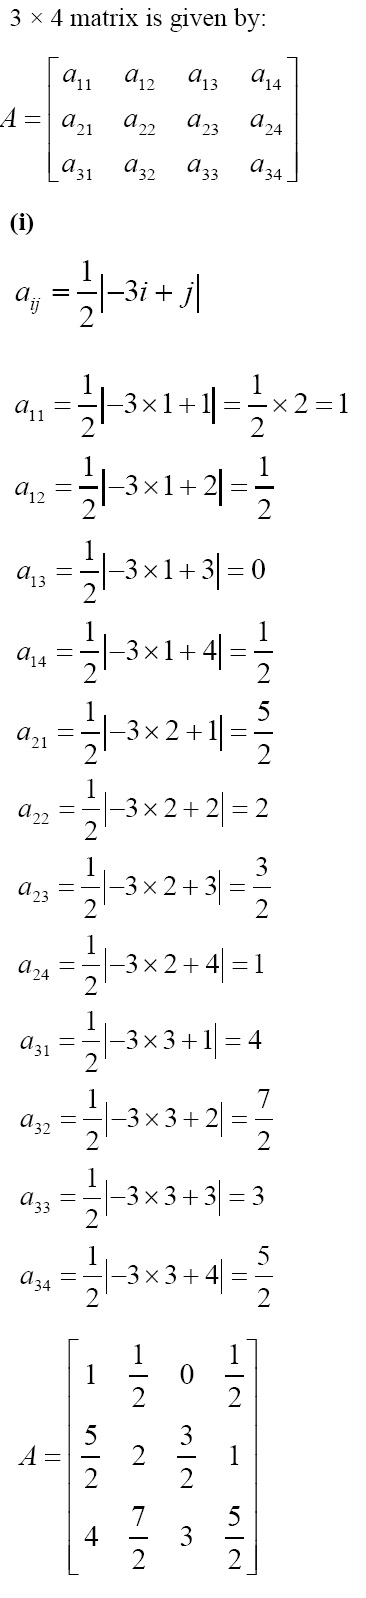 NCERT Solutions for CBSE Class 12 Mathematics ‒ Chapter 3: Matrices [Exercise 3.1; solution 5 (i)]